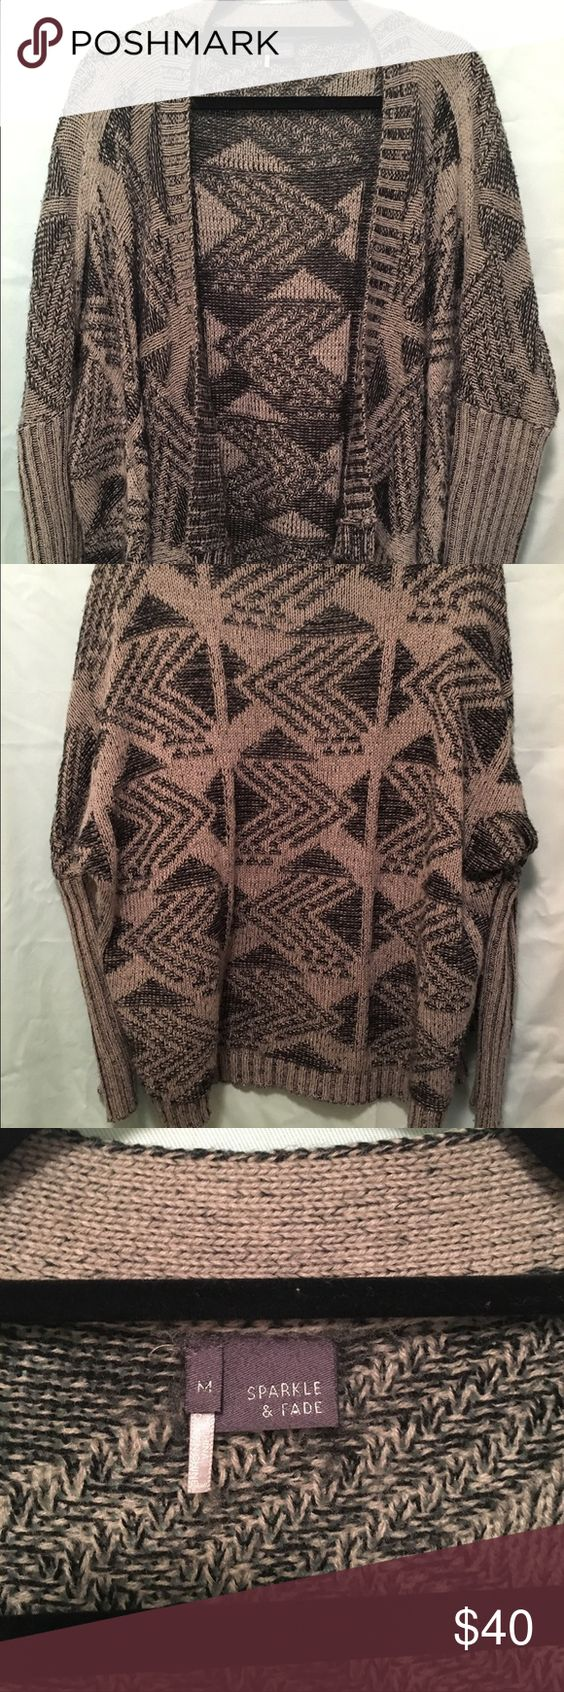 Urban outfitters boyfriend sweater Super cozy oversized sweater perfect for cool fall nights or layering. Urban Outfitters Sweaters